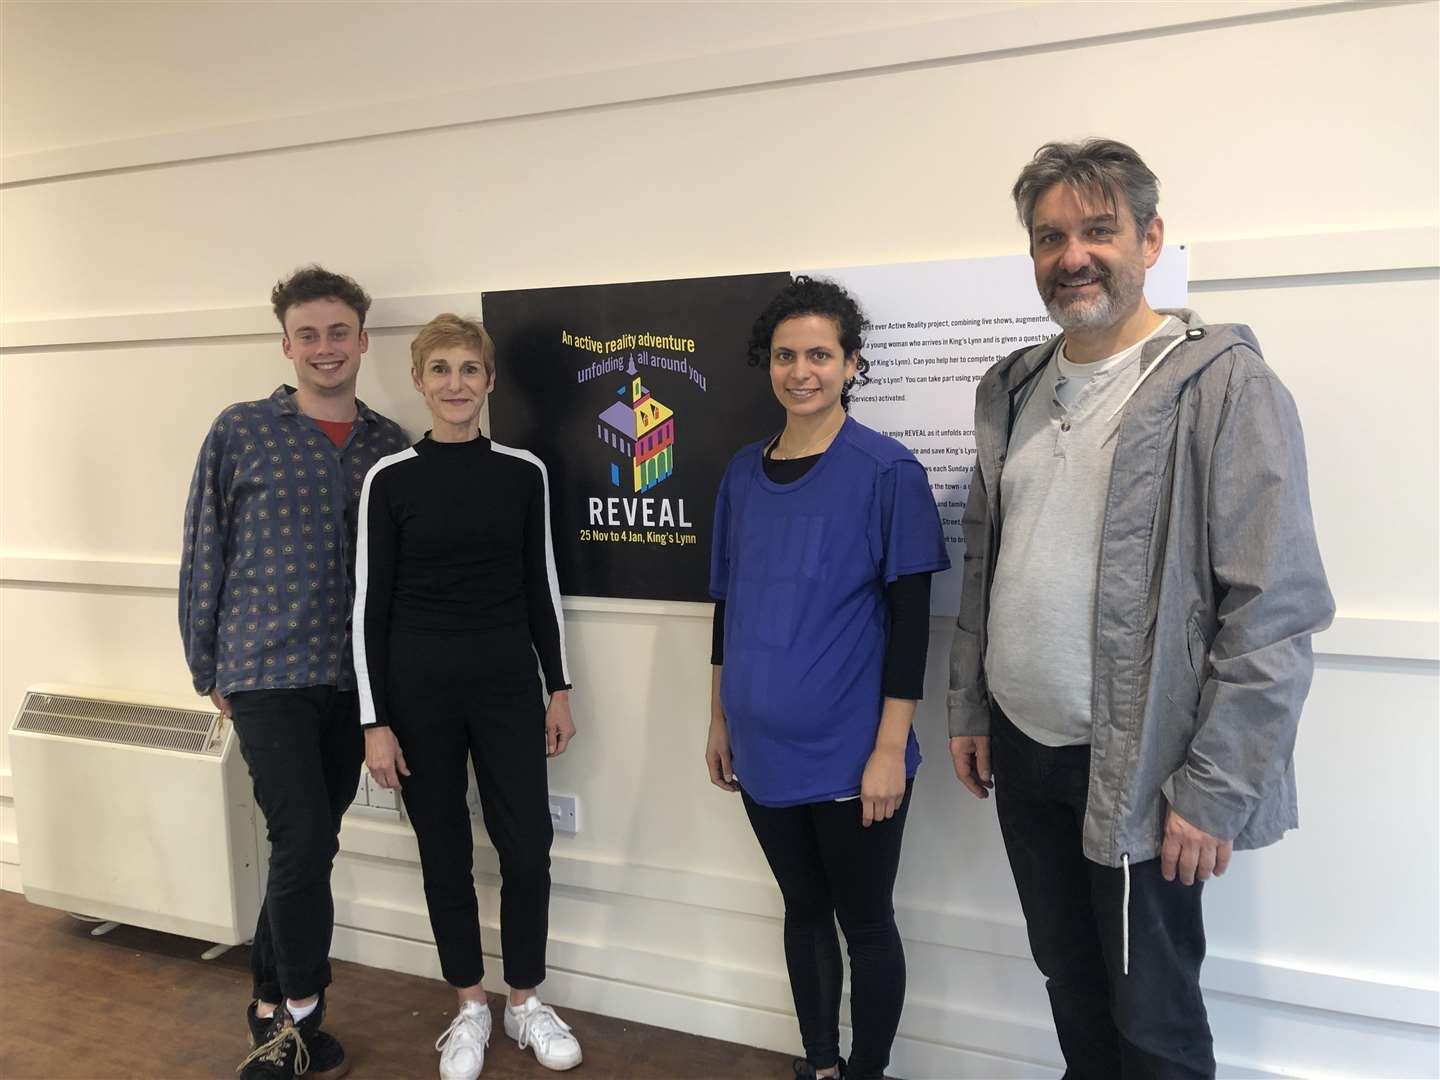 Actors from active reality adventure REVEAL. From left, Olly Westlake who plays Joe, Claire Lacey who plays Margaret of Antioch, Rebecca Banatvala who plays Maya and Tim Welton as Uncle Don. (5915659)